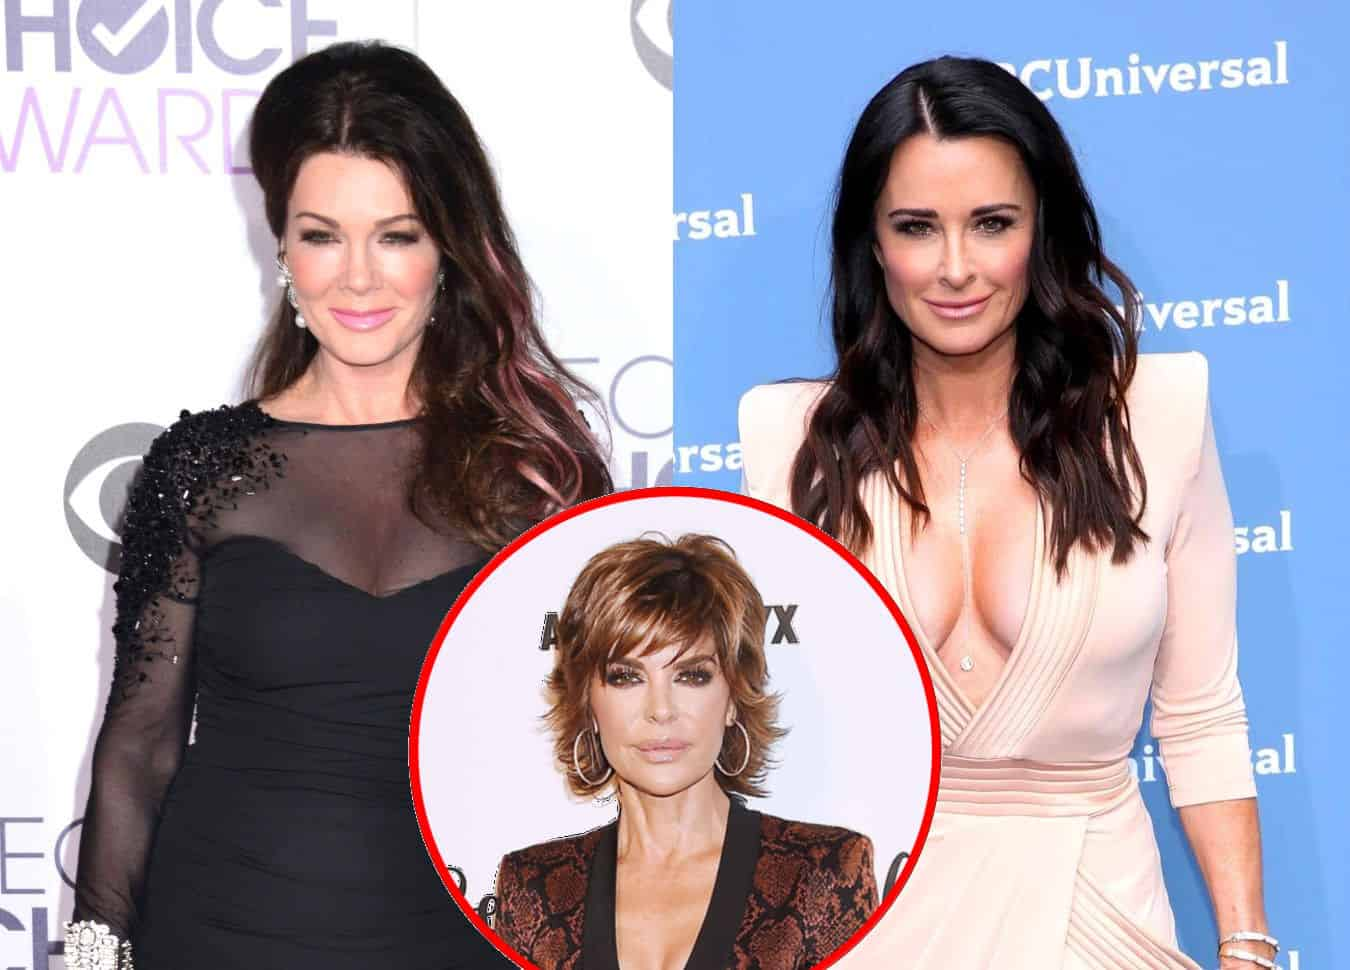 Lisa Vanderpump Slams Kyle Richards for Turning on Her as She Was Mourning and Shades Her for Talking About Her Behind Her Back, See How Lisa Rinna Fired Back at Her Former RHOBH Cast Mate